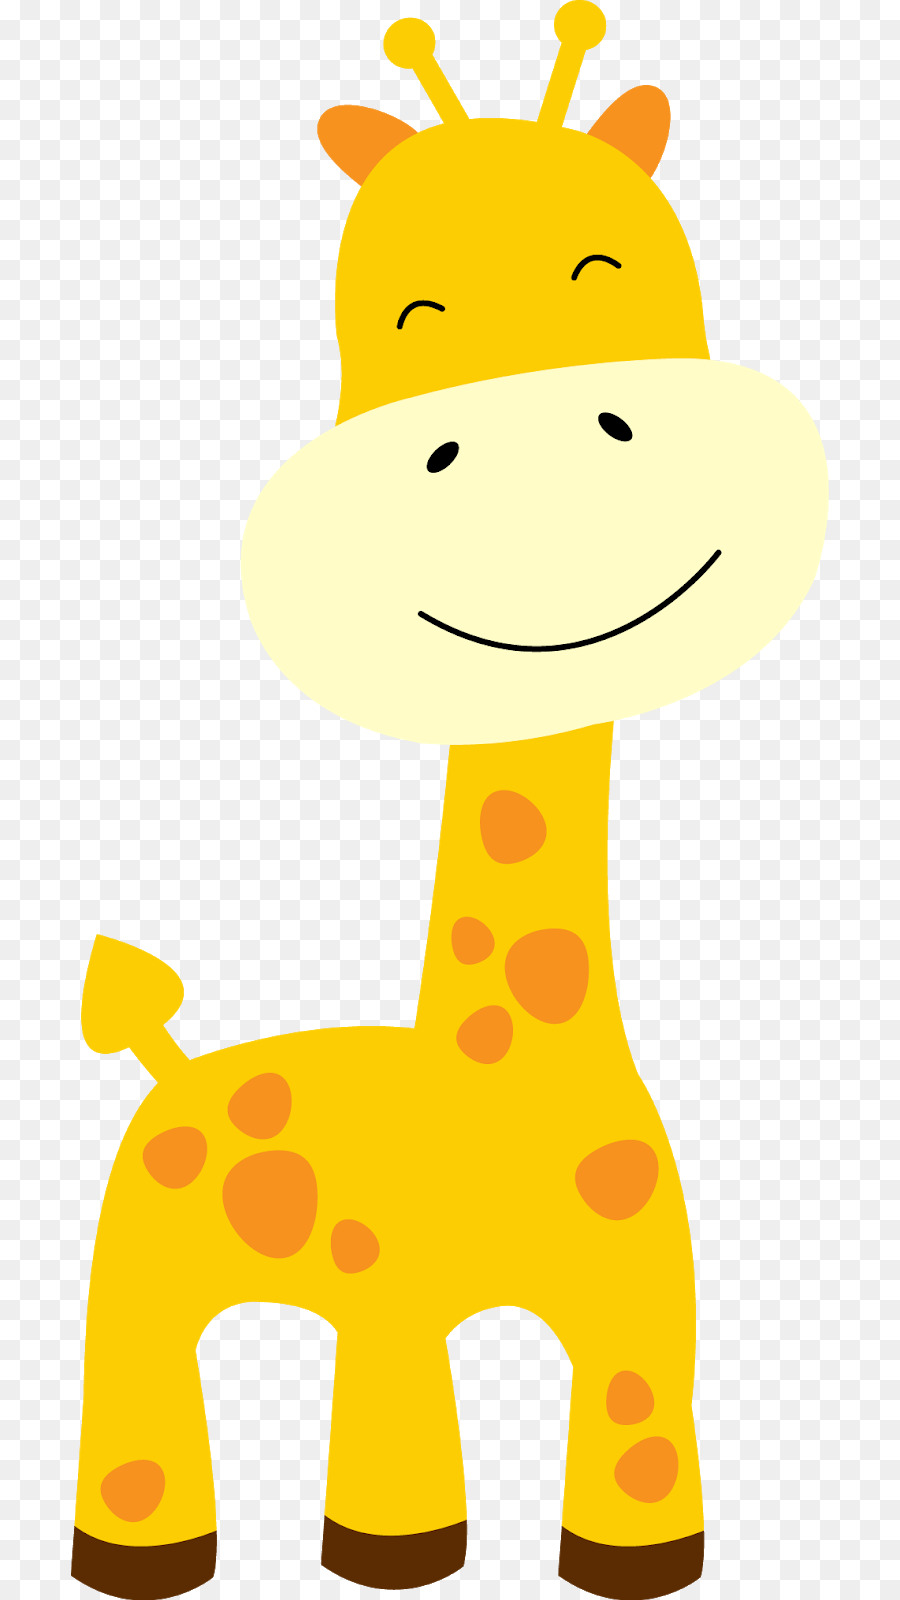 baby giraffes clip art jungle safari png download 758 1600 rh kisspng com free jungle safari clipart free clipart safari animals